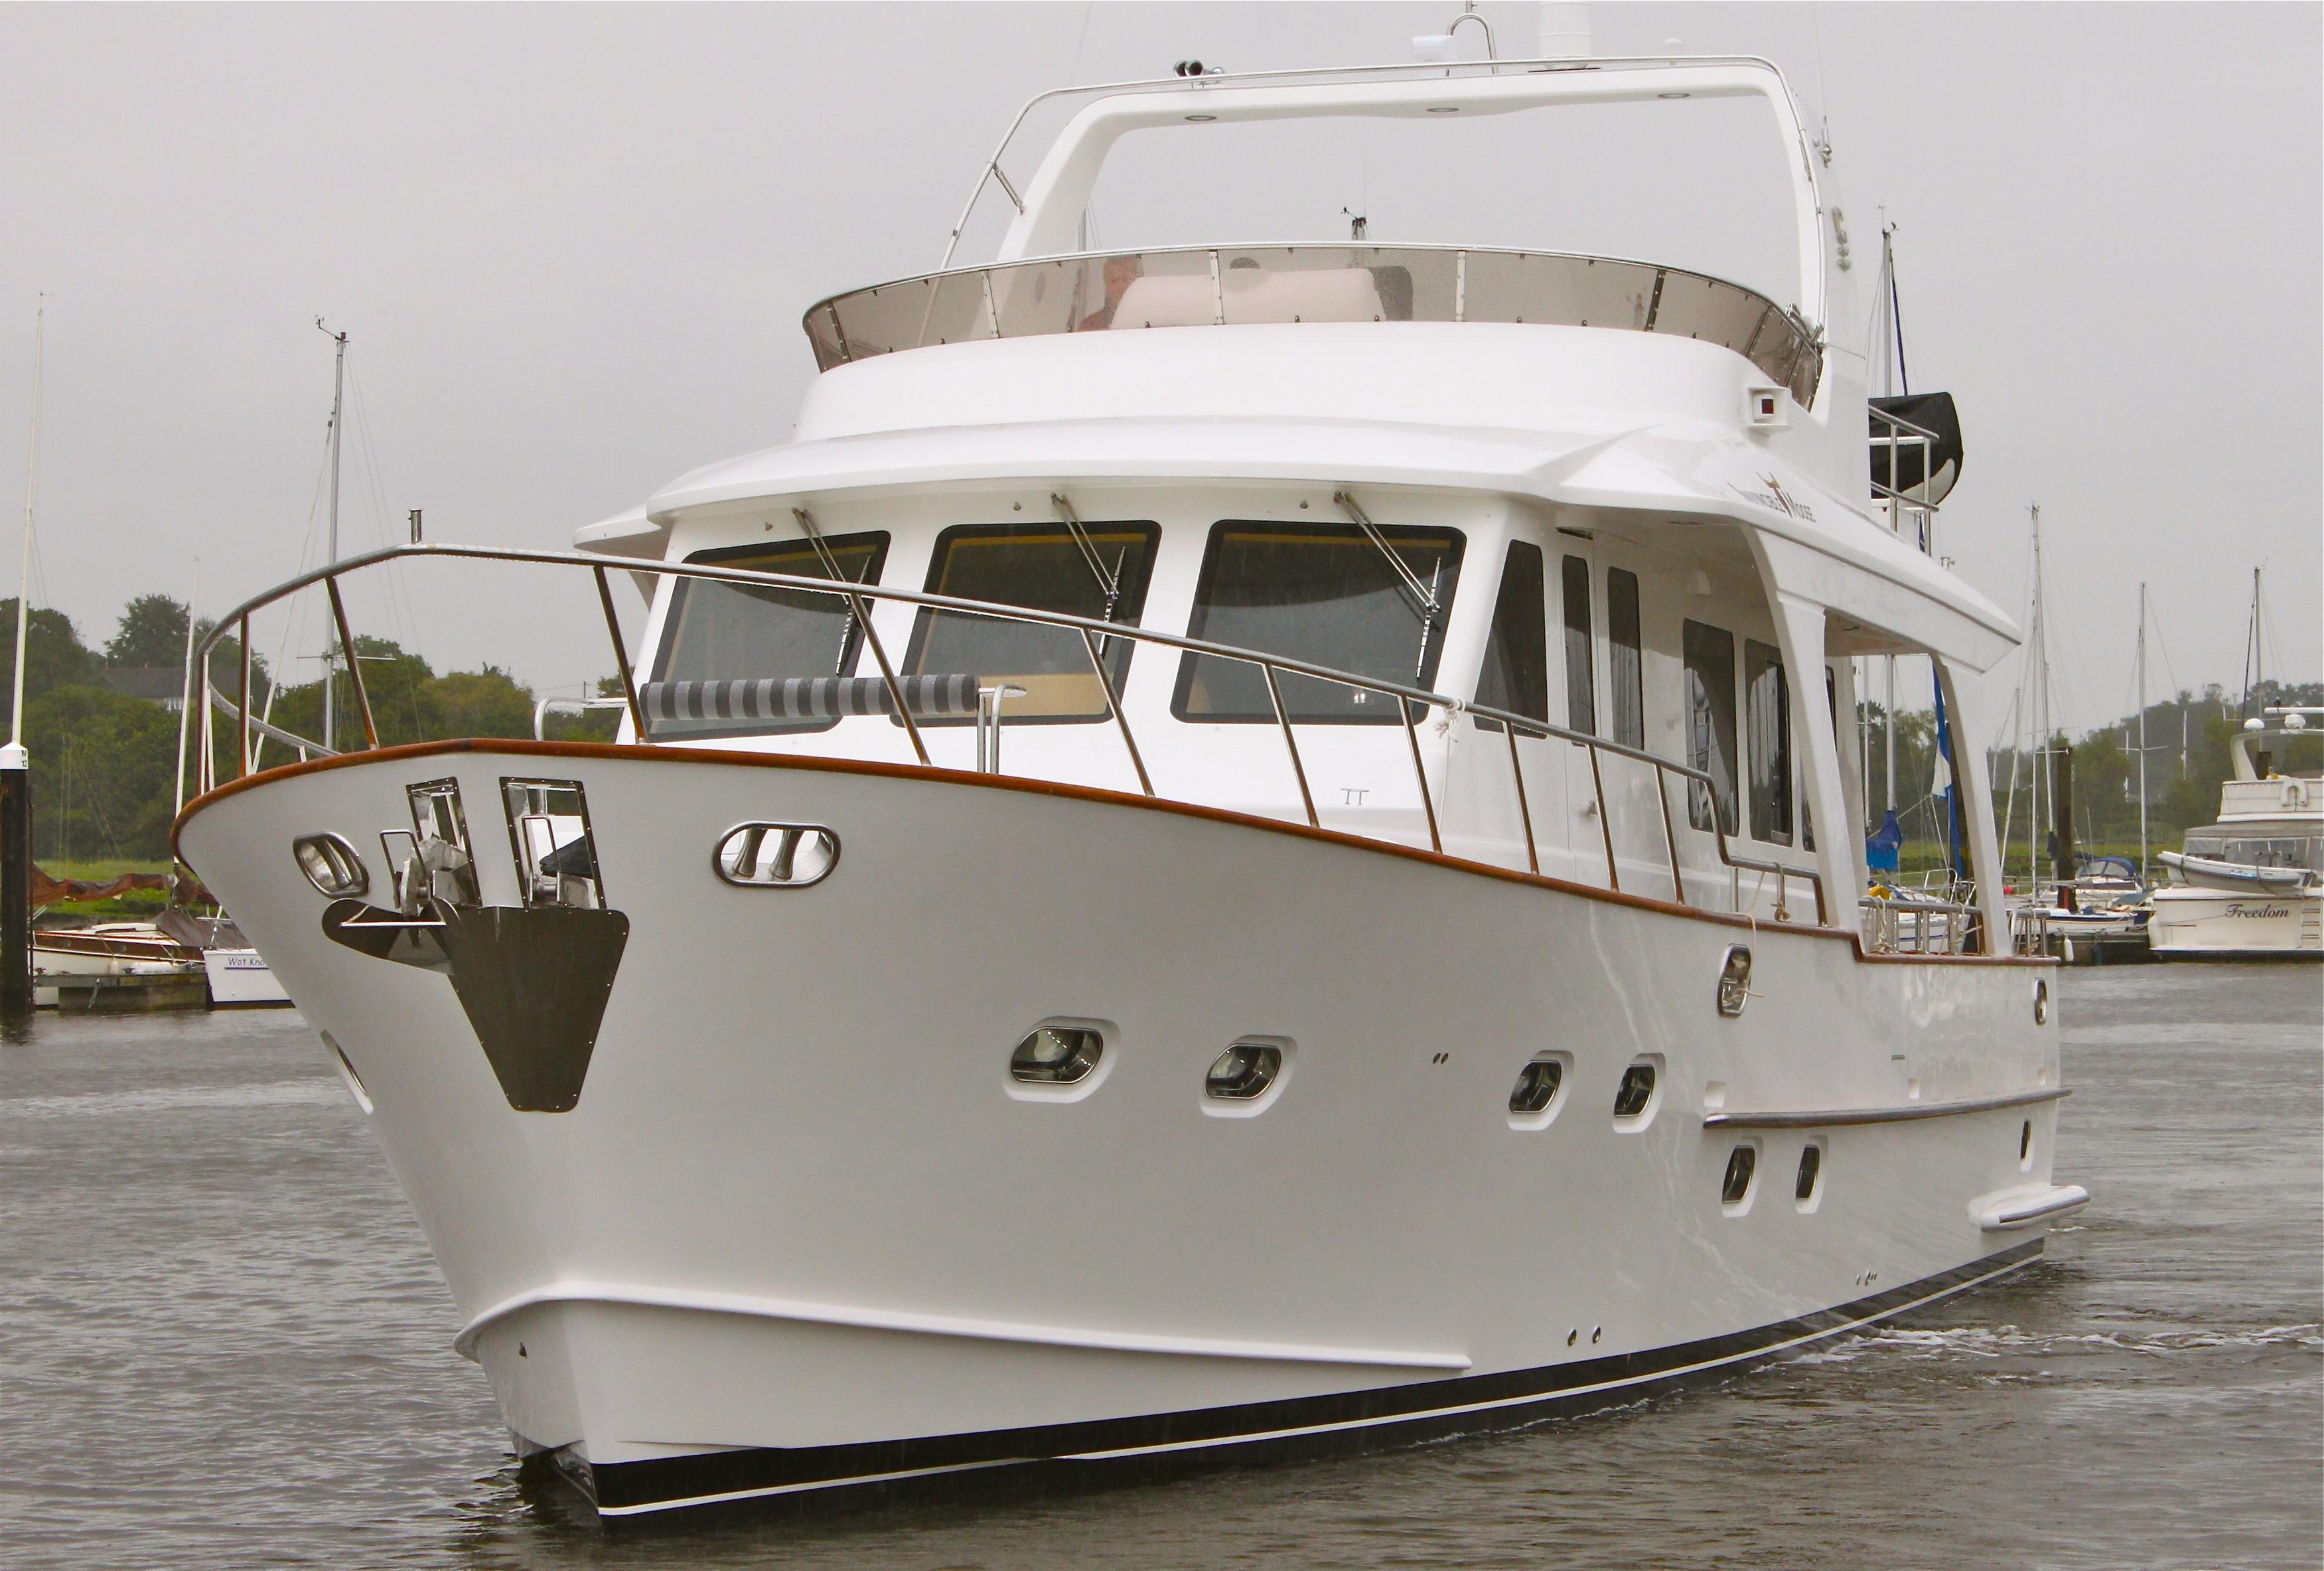 2012 Clipper Motor Yachts 60' Yacht Hmy Sales. 2012 Clipper Motor Yachts Cordova 60. Wiring. Woods 6215 Wiring Diagrams At Scoala.co